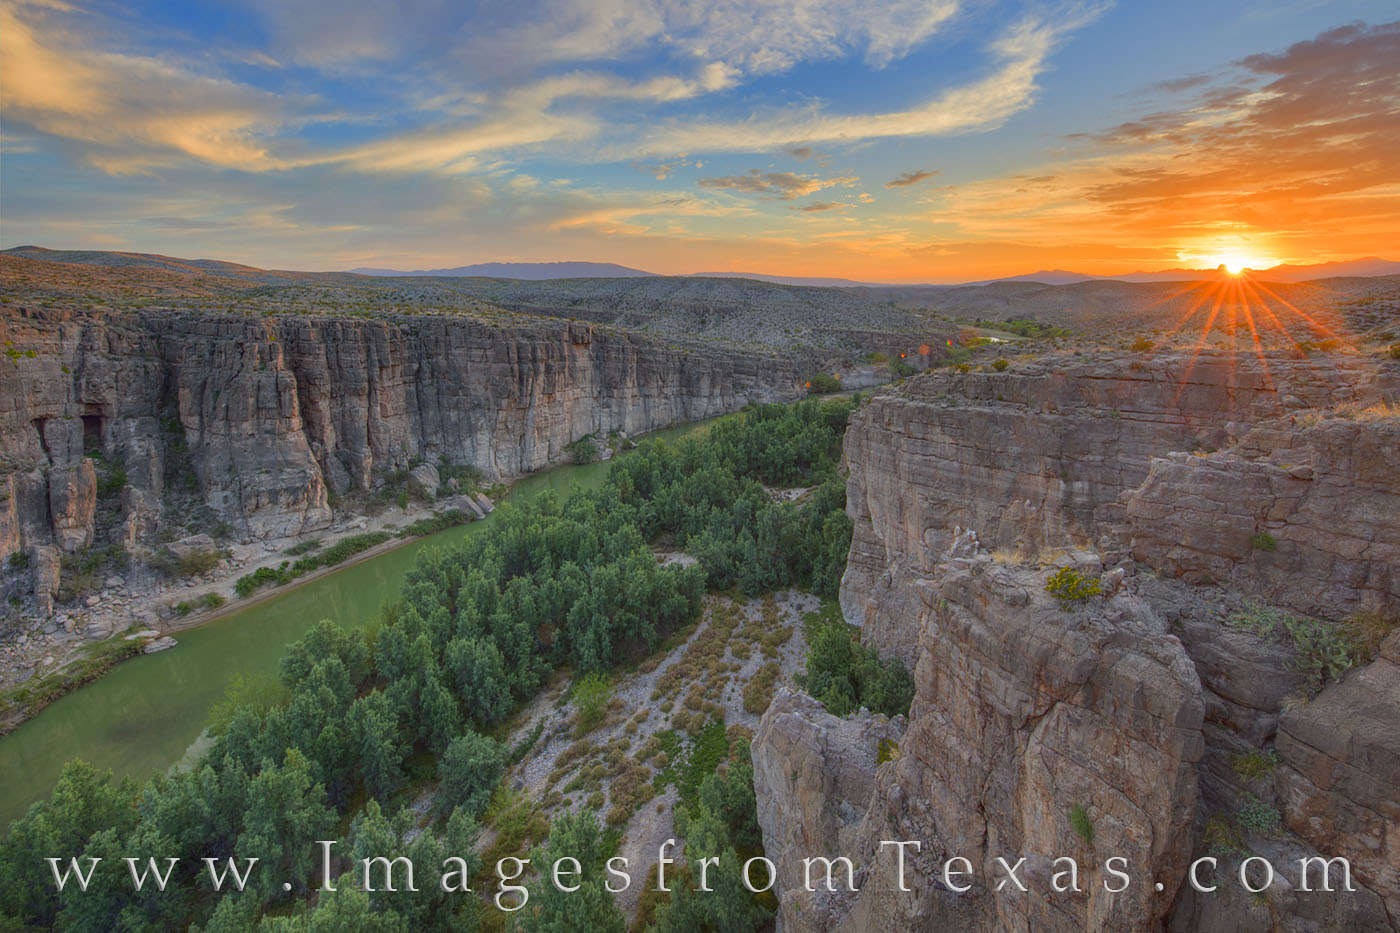 Hot spring canyon, big bend, rio grande, hiking, adventure, sunset, cliffs, canyon, orange, blue, photo